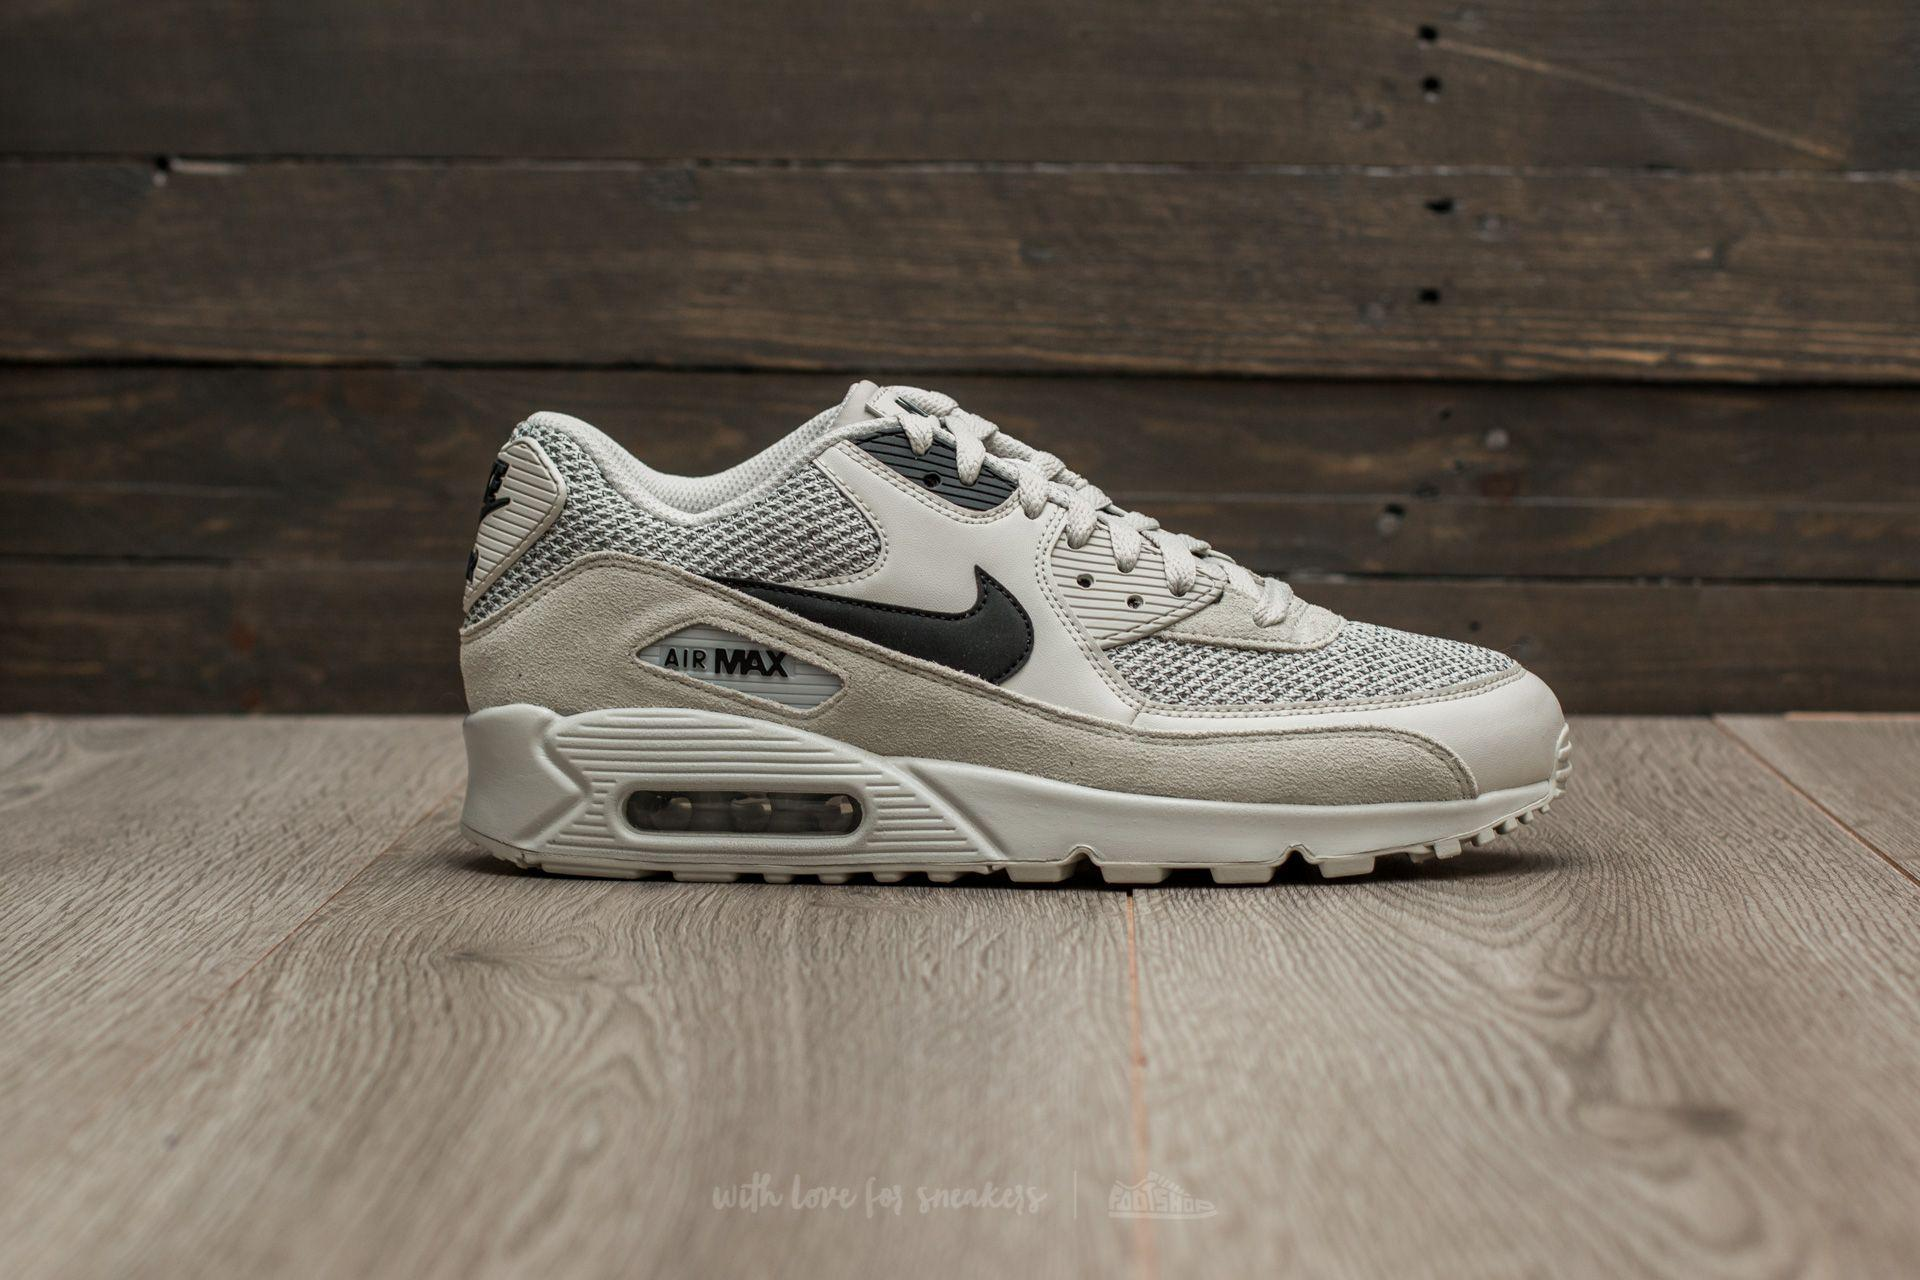 91a615ad1616b5 Nike Max 1d3ce Air Norway D91f5 Essential Light nvNOyw08m